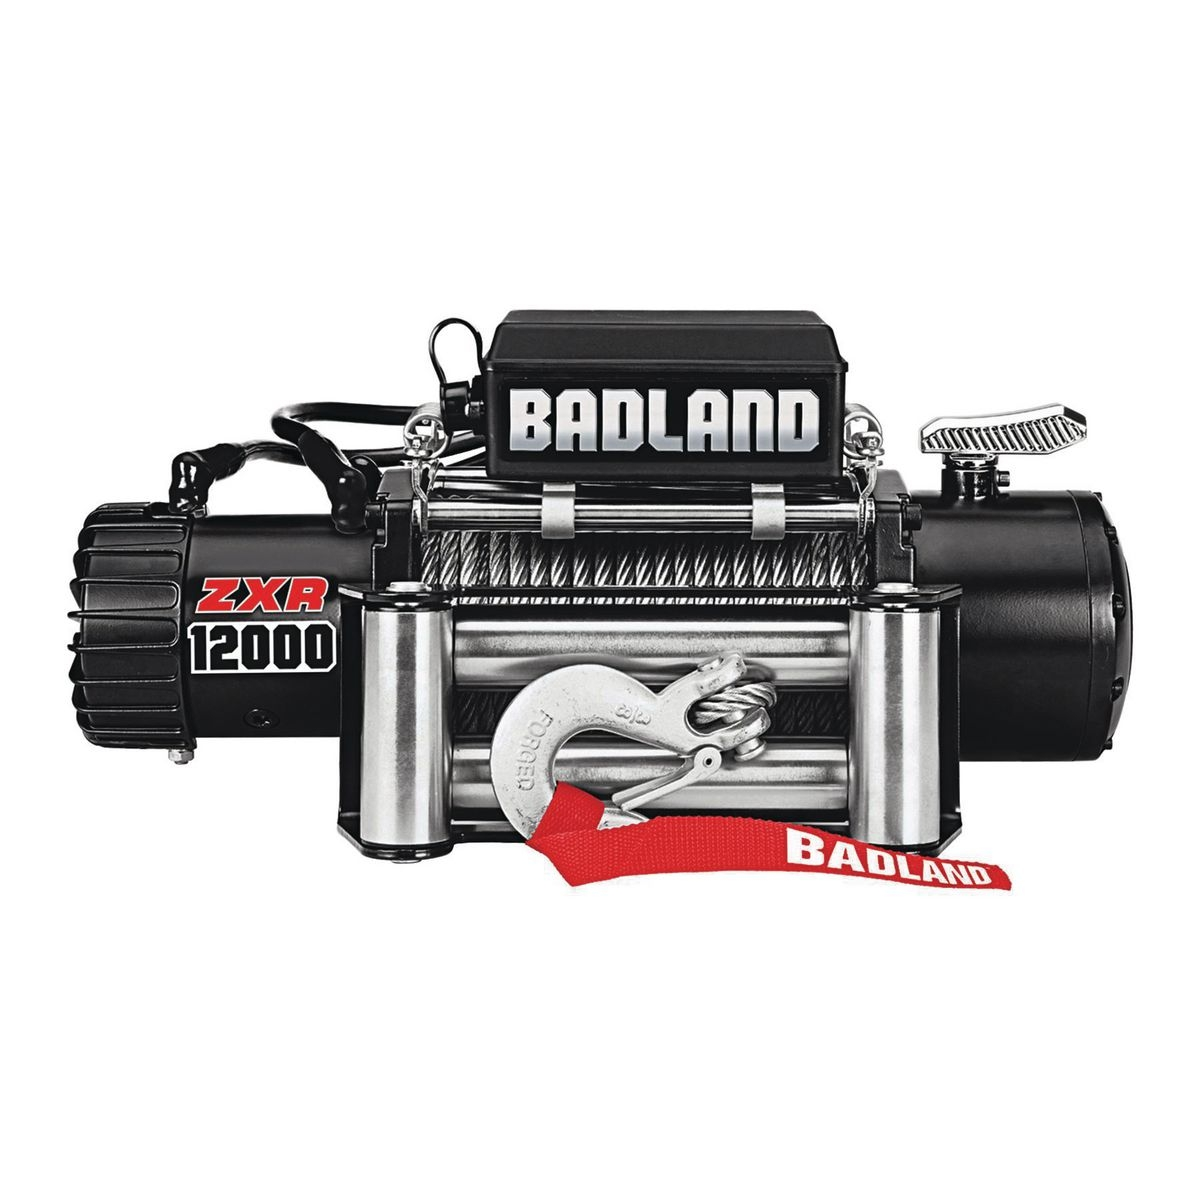 badlands atv winch wiring diagram 2003 kia sedona 12000 lbs off road vehicle electric with automatic